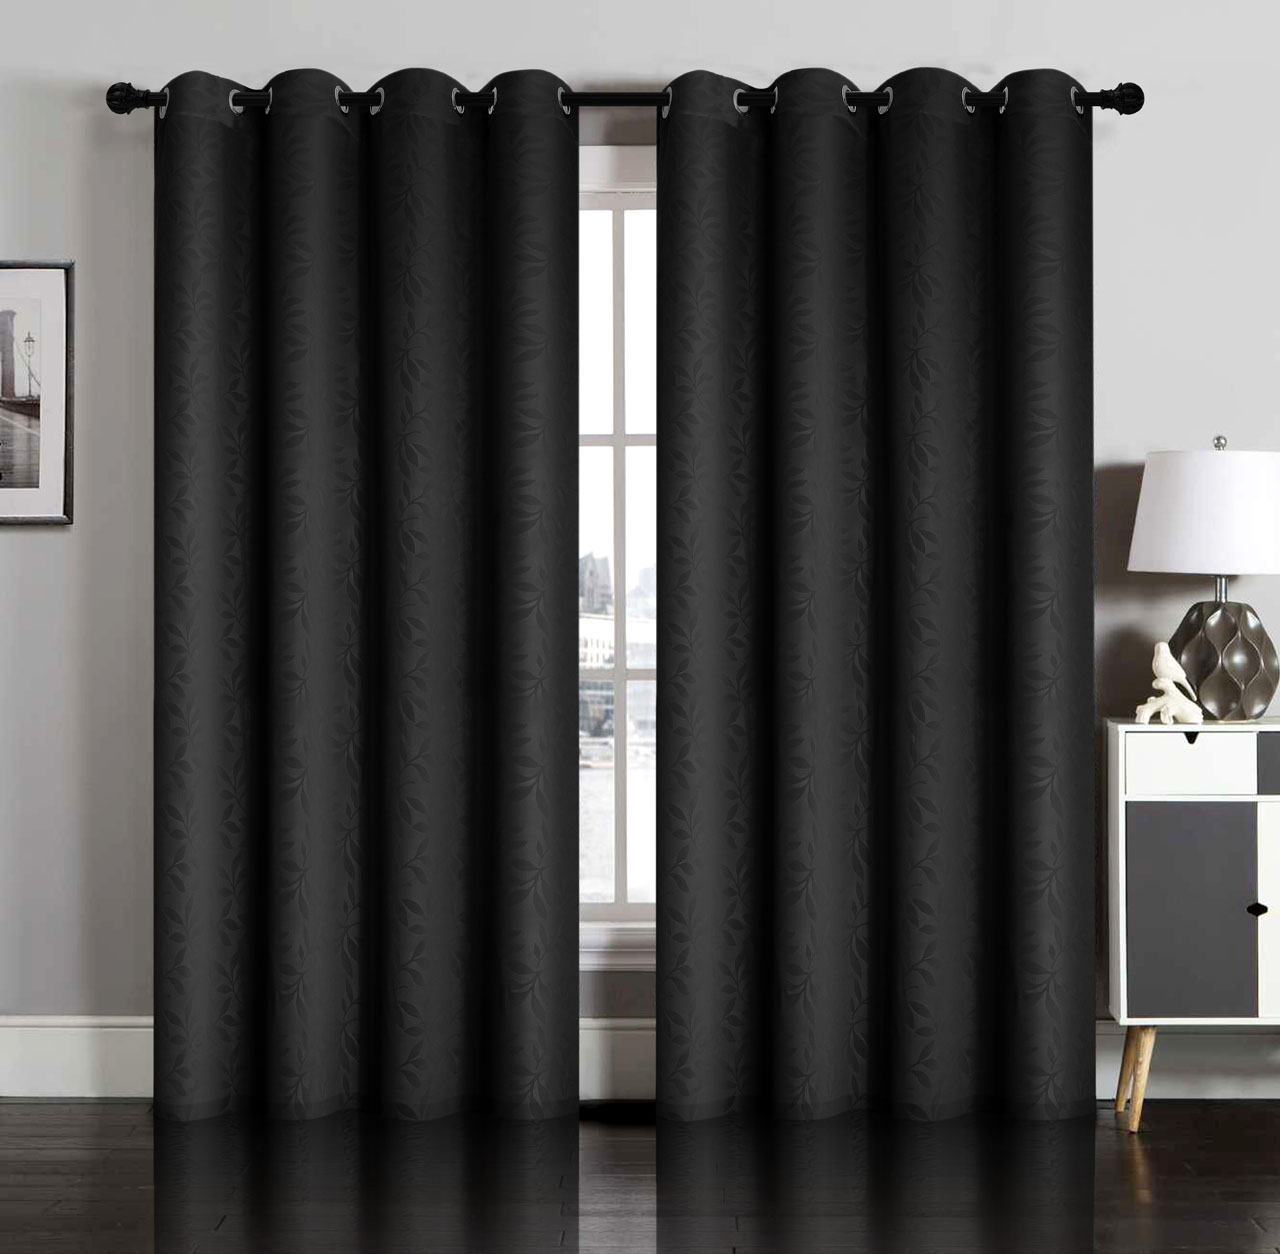 Pair Of Susan Blackout Embossed Window Curtain Panels W